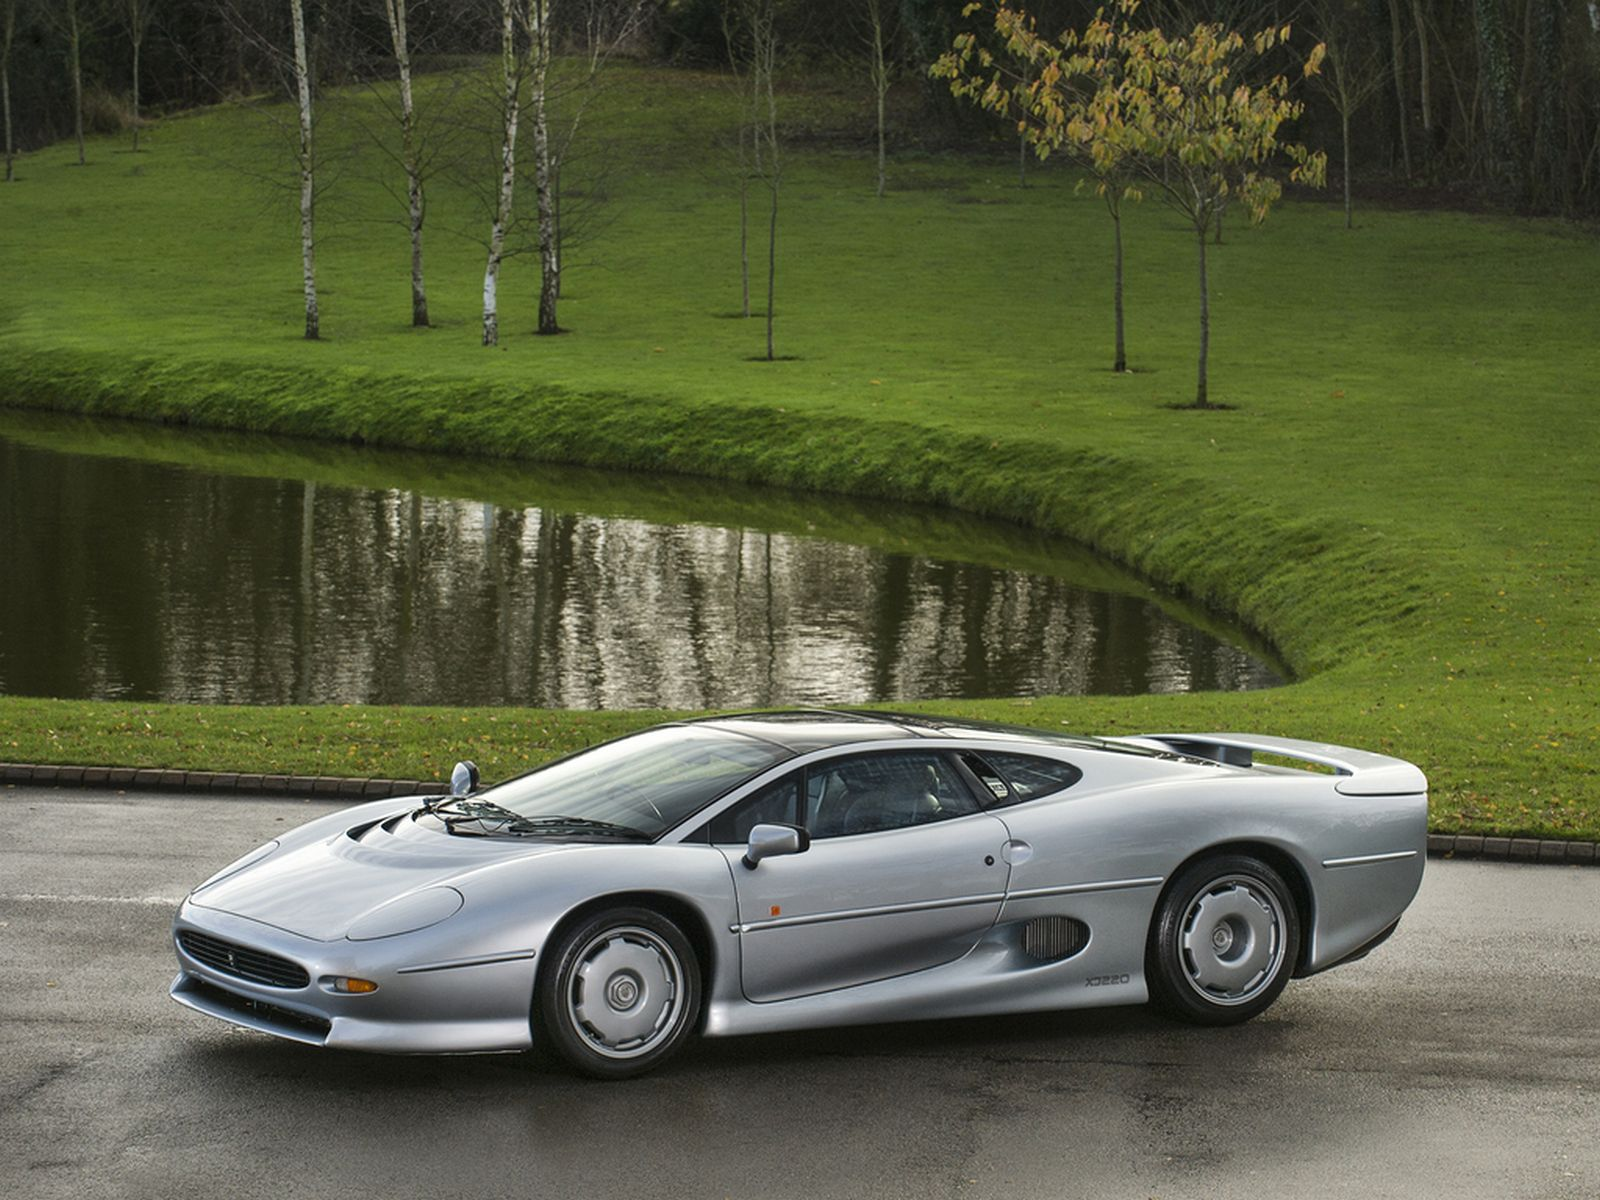 Jaguar XJ220 - Best 90s Supercars